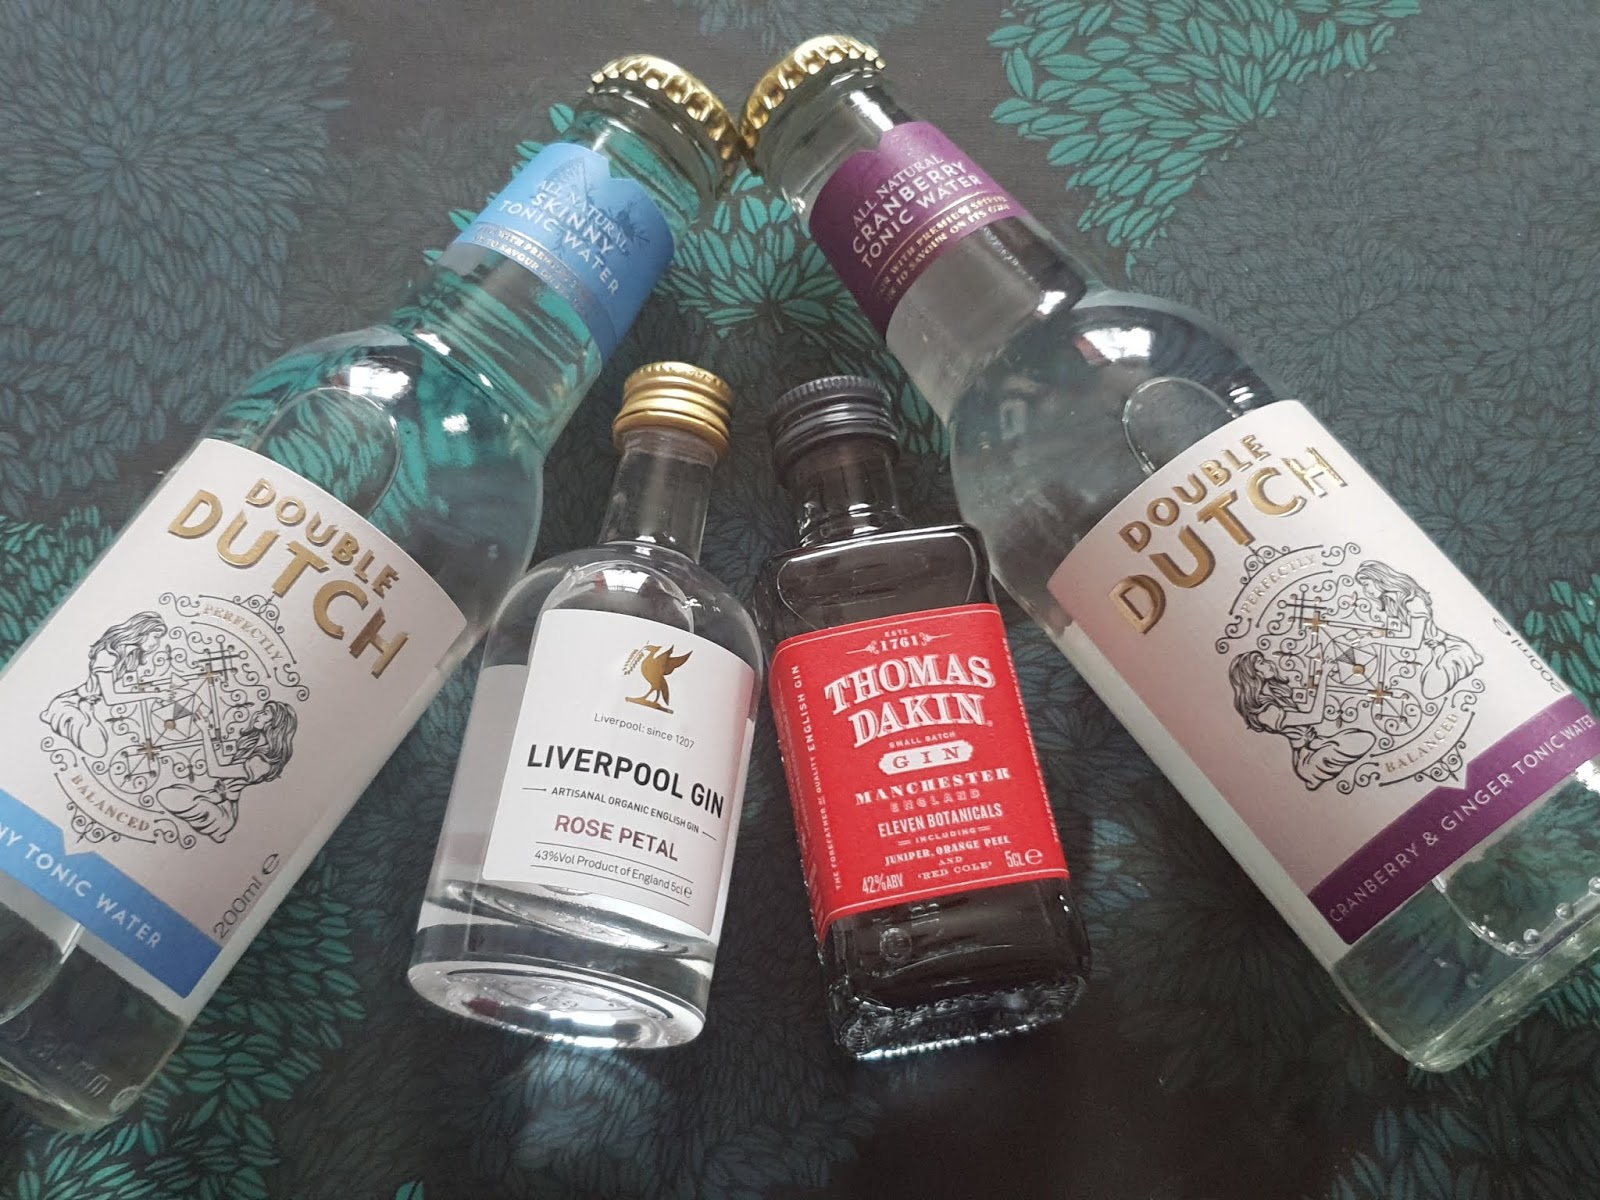 double dutch mixers manchester gins